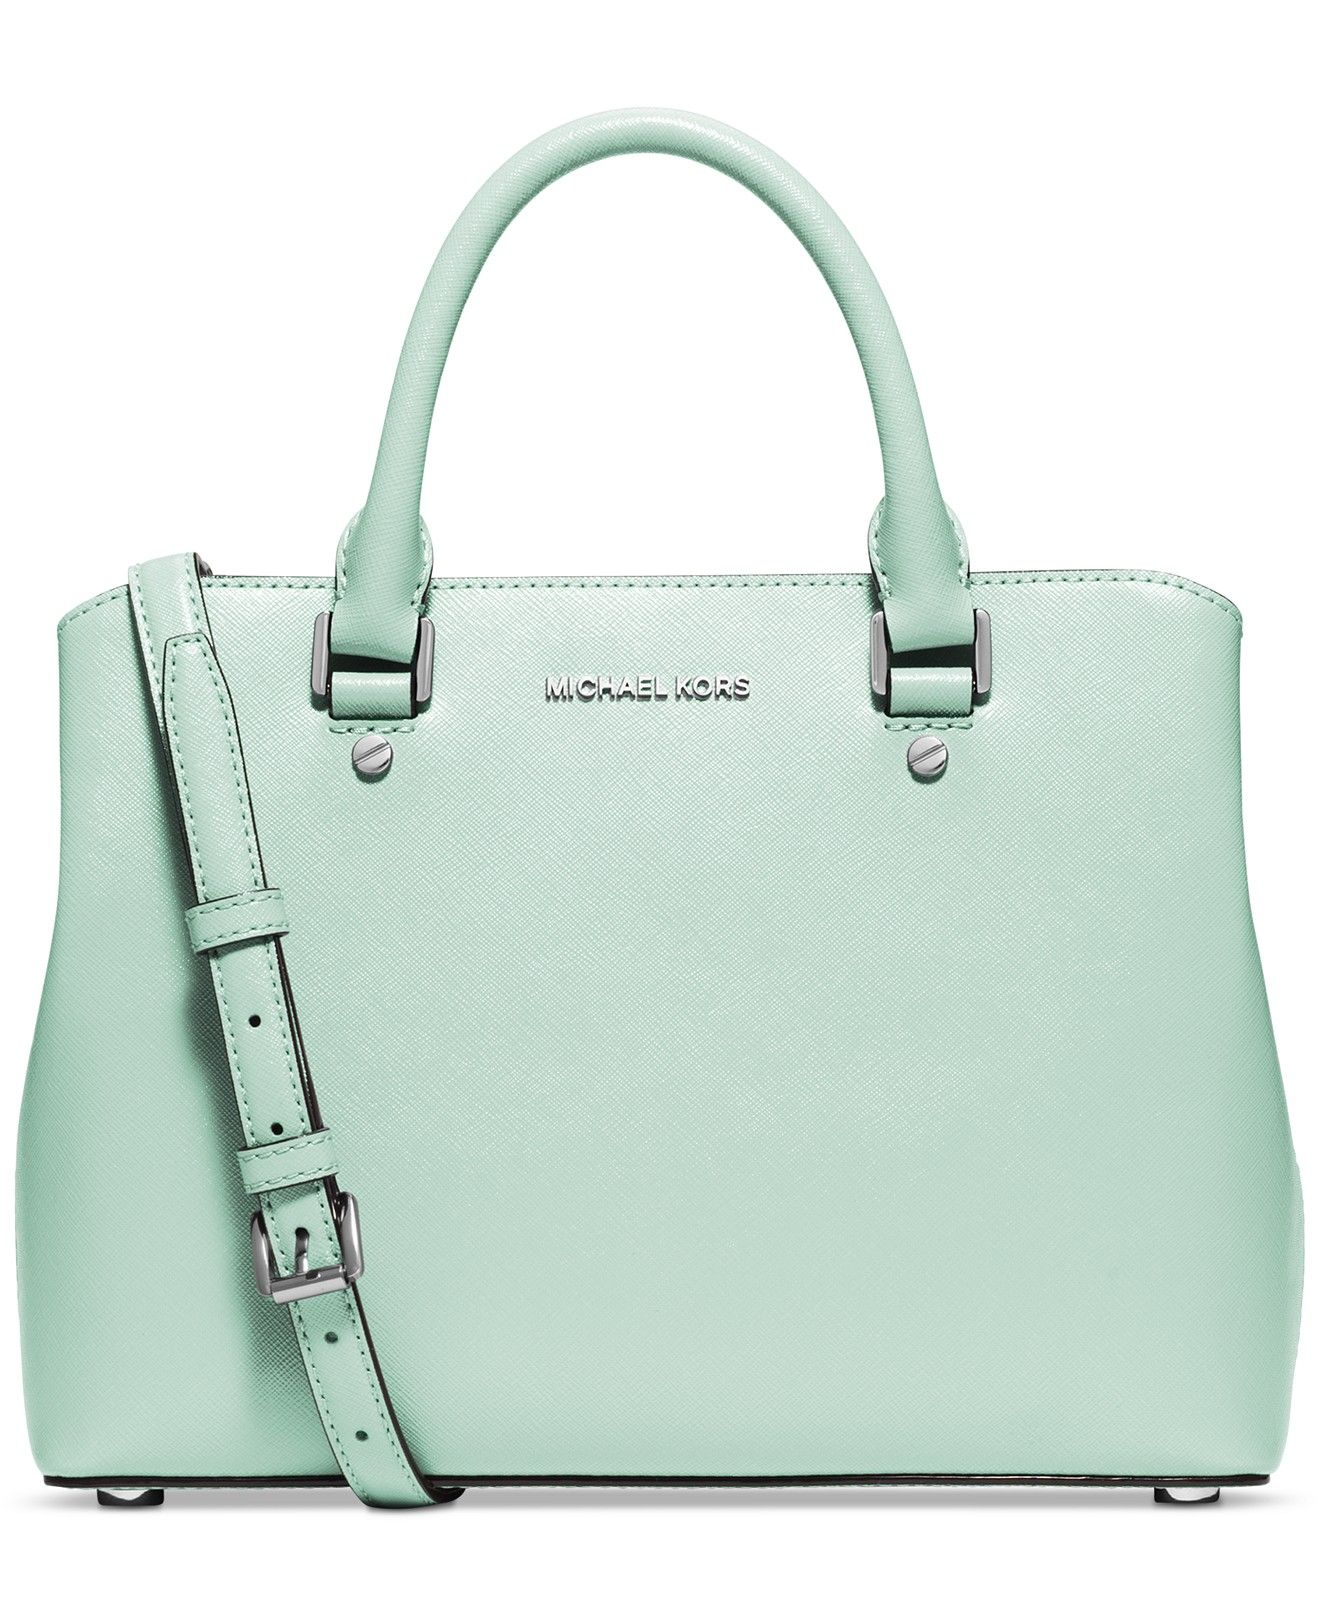 MICHAEL Michael Kors Savannah Medium Satchel - MICHAEL Michael Kors -  Handbags \u0026 Accessories - Macy\u0027s